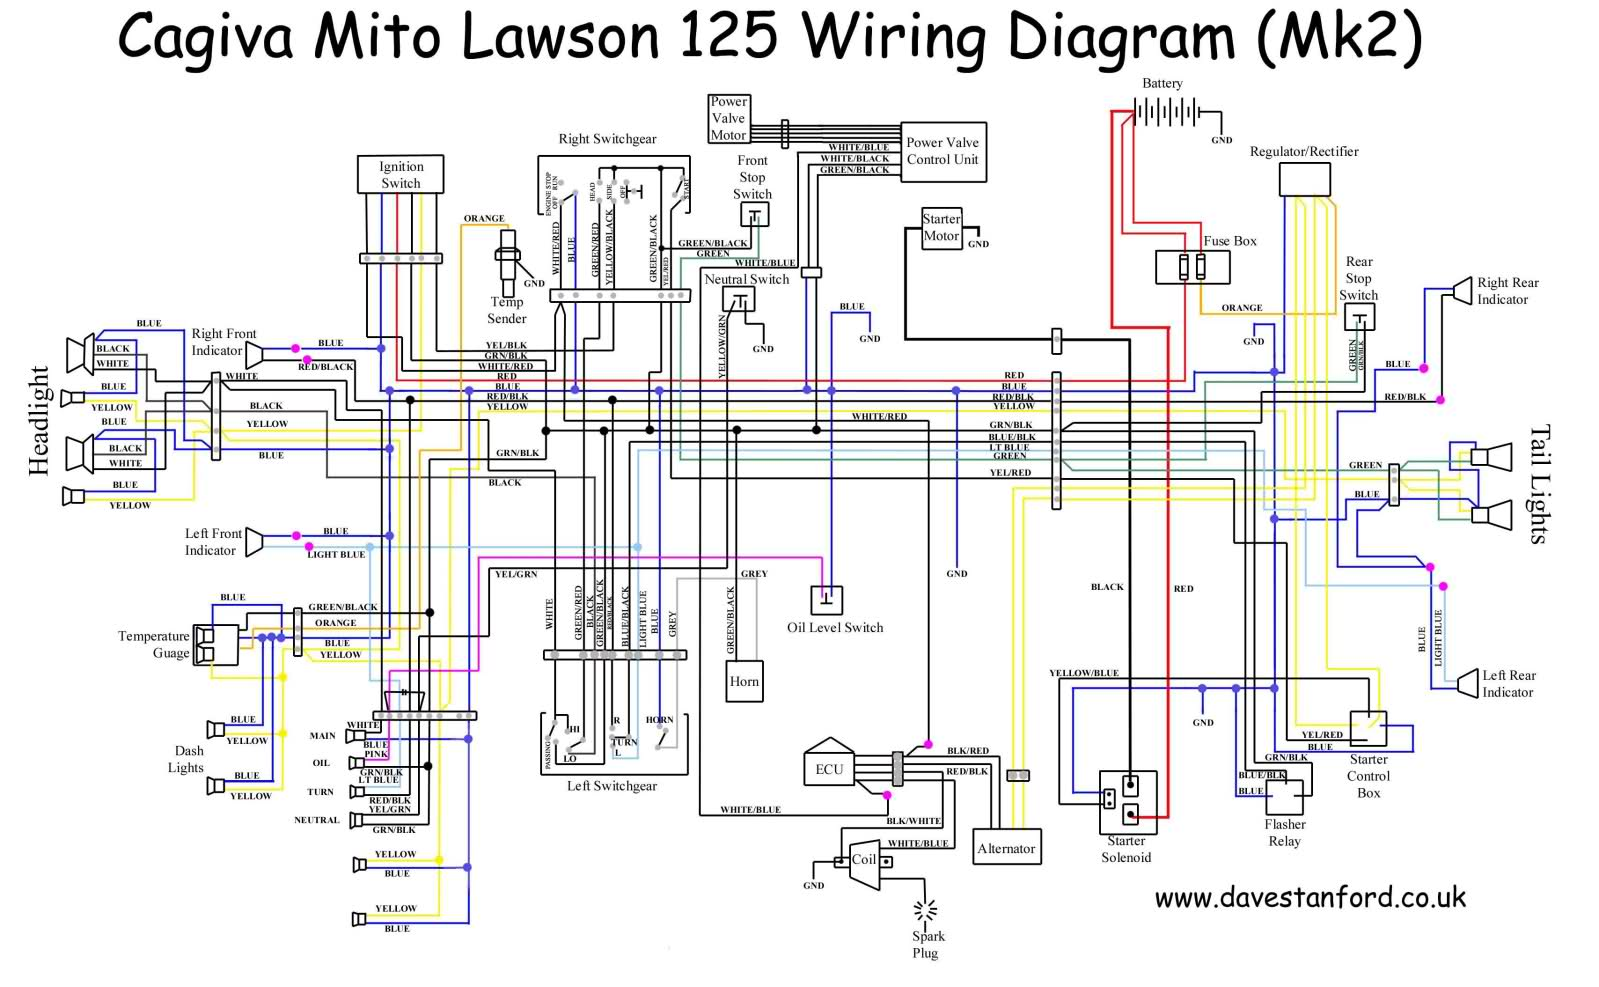 jayco swan wiring diagram omron relay cagiva mito 125 diagrams